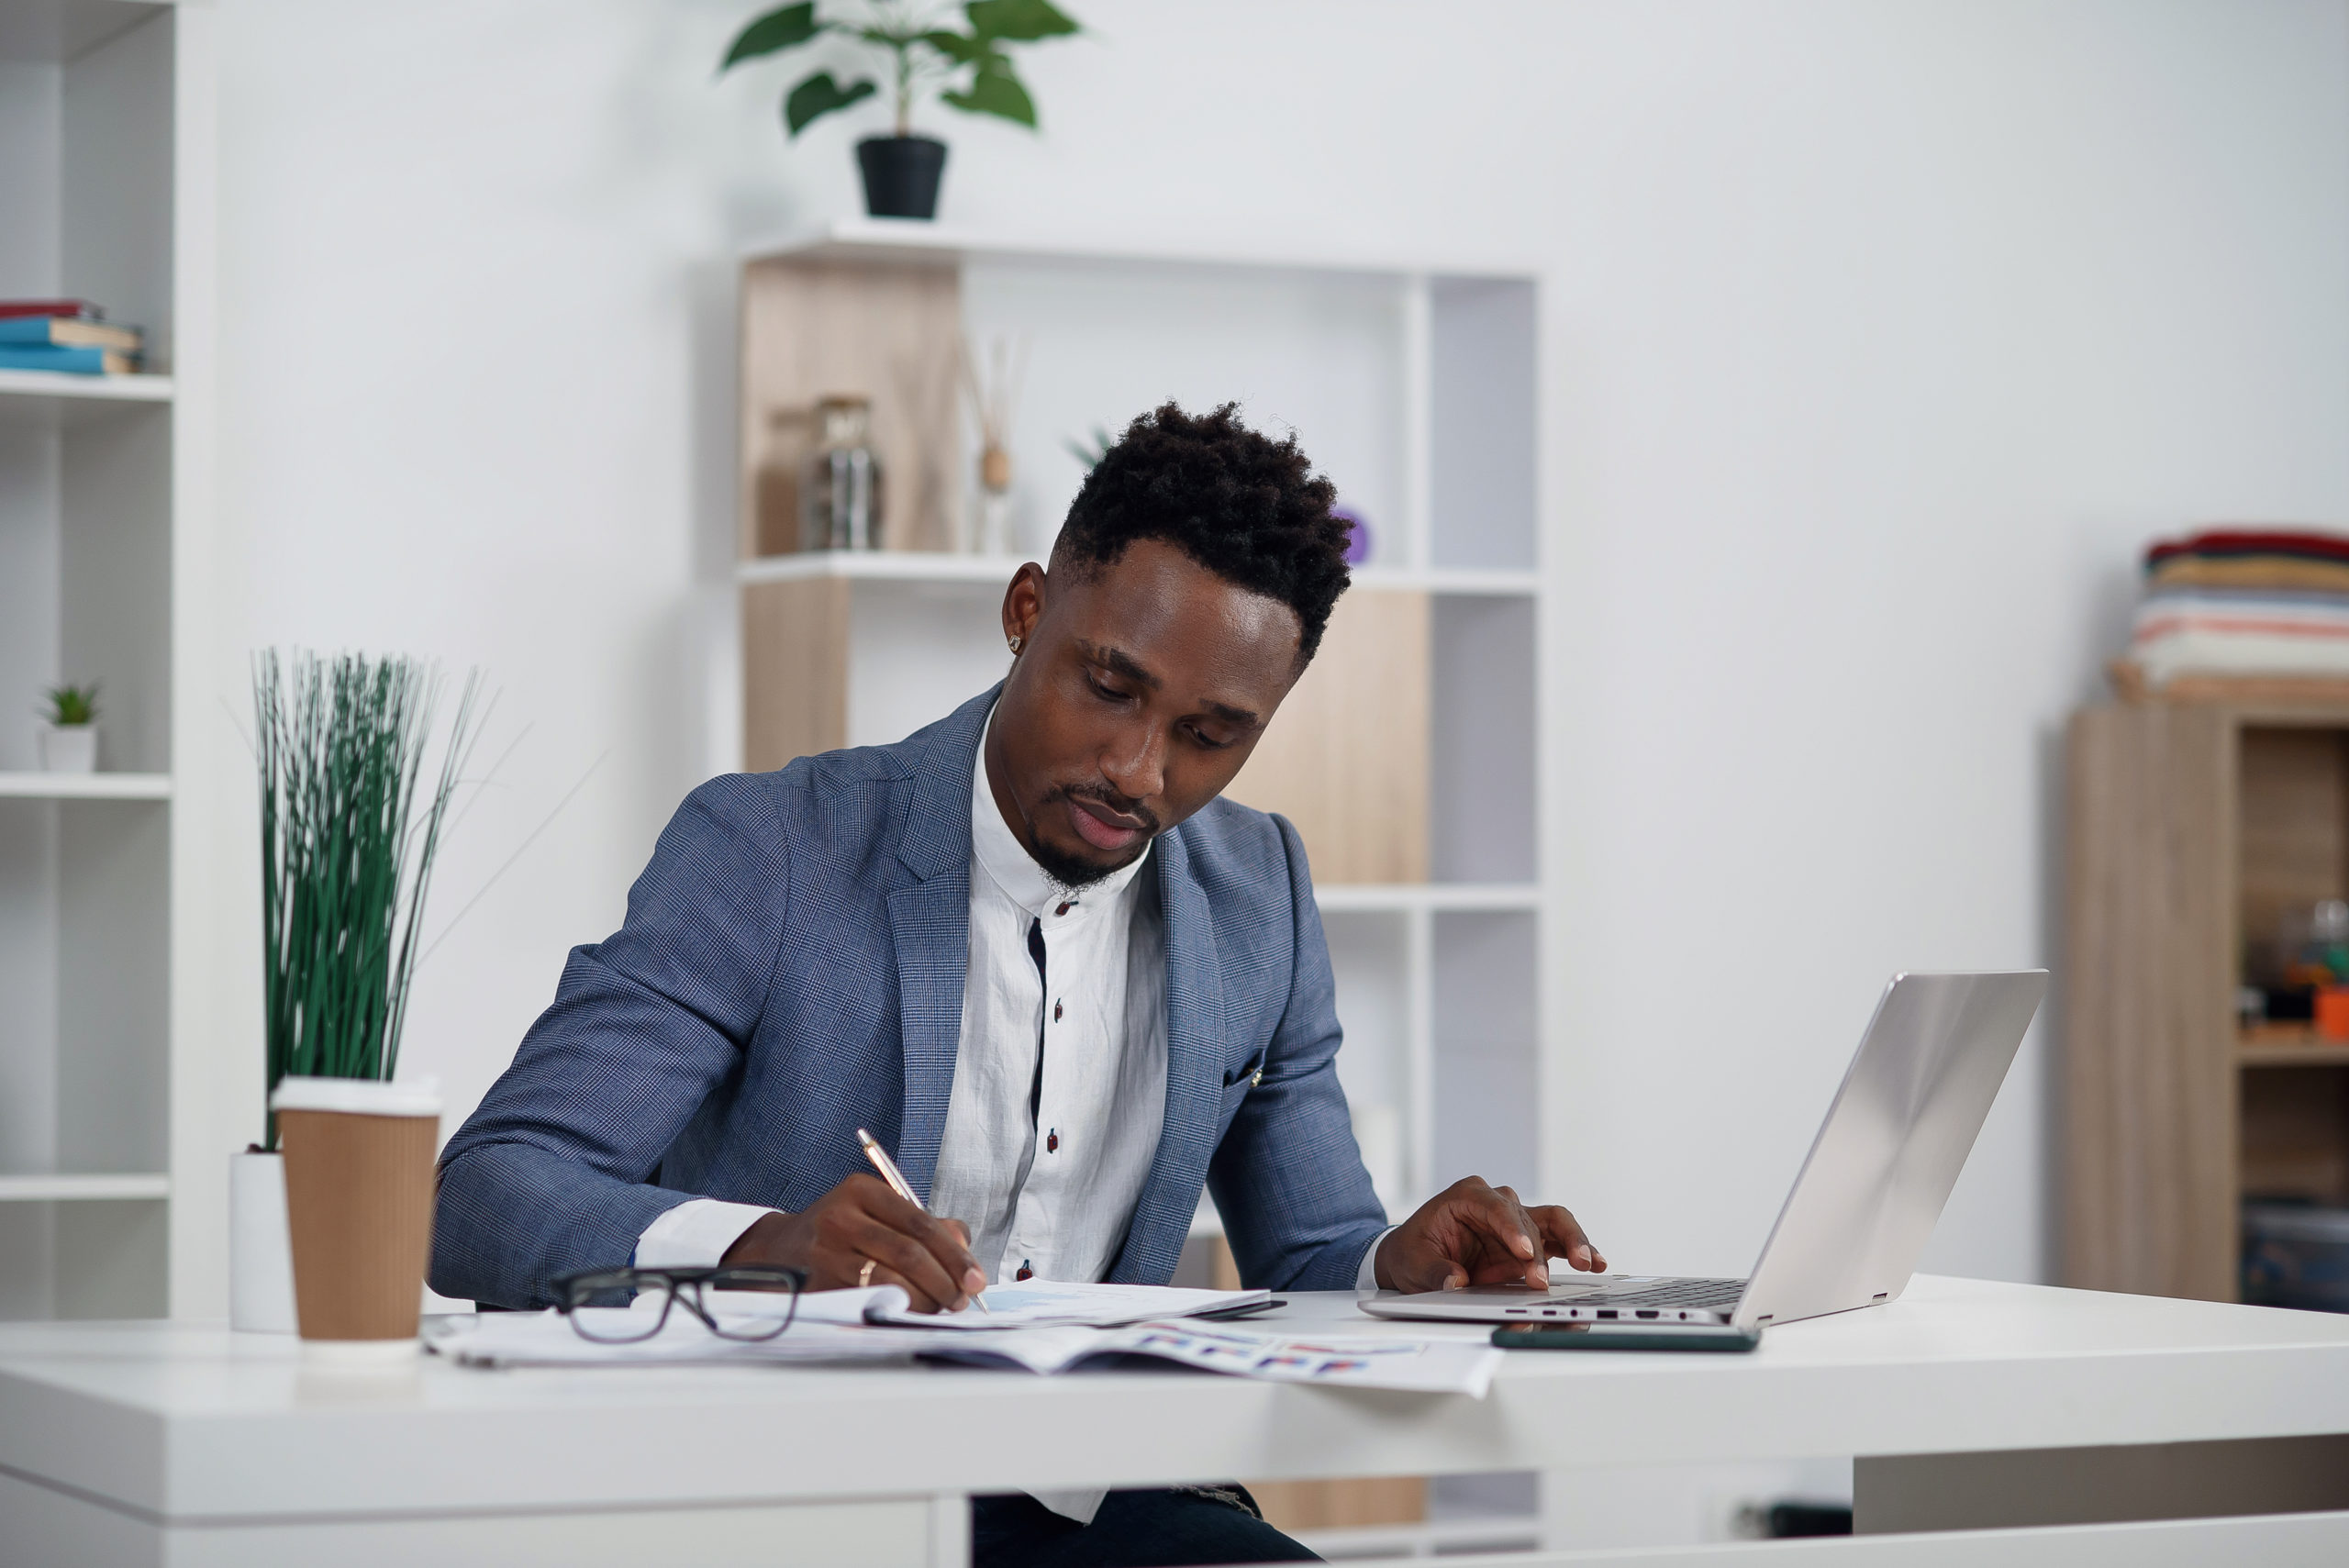 Businessman typing something on laptop in his office.